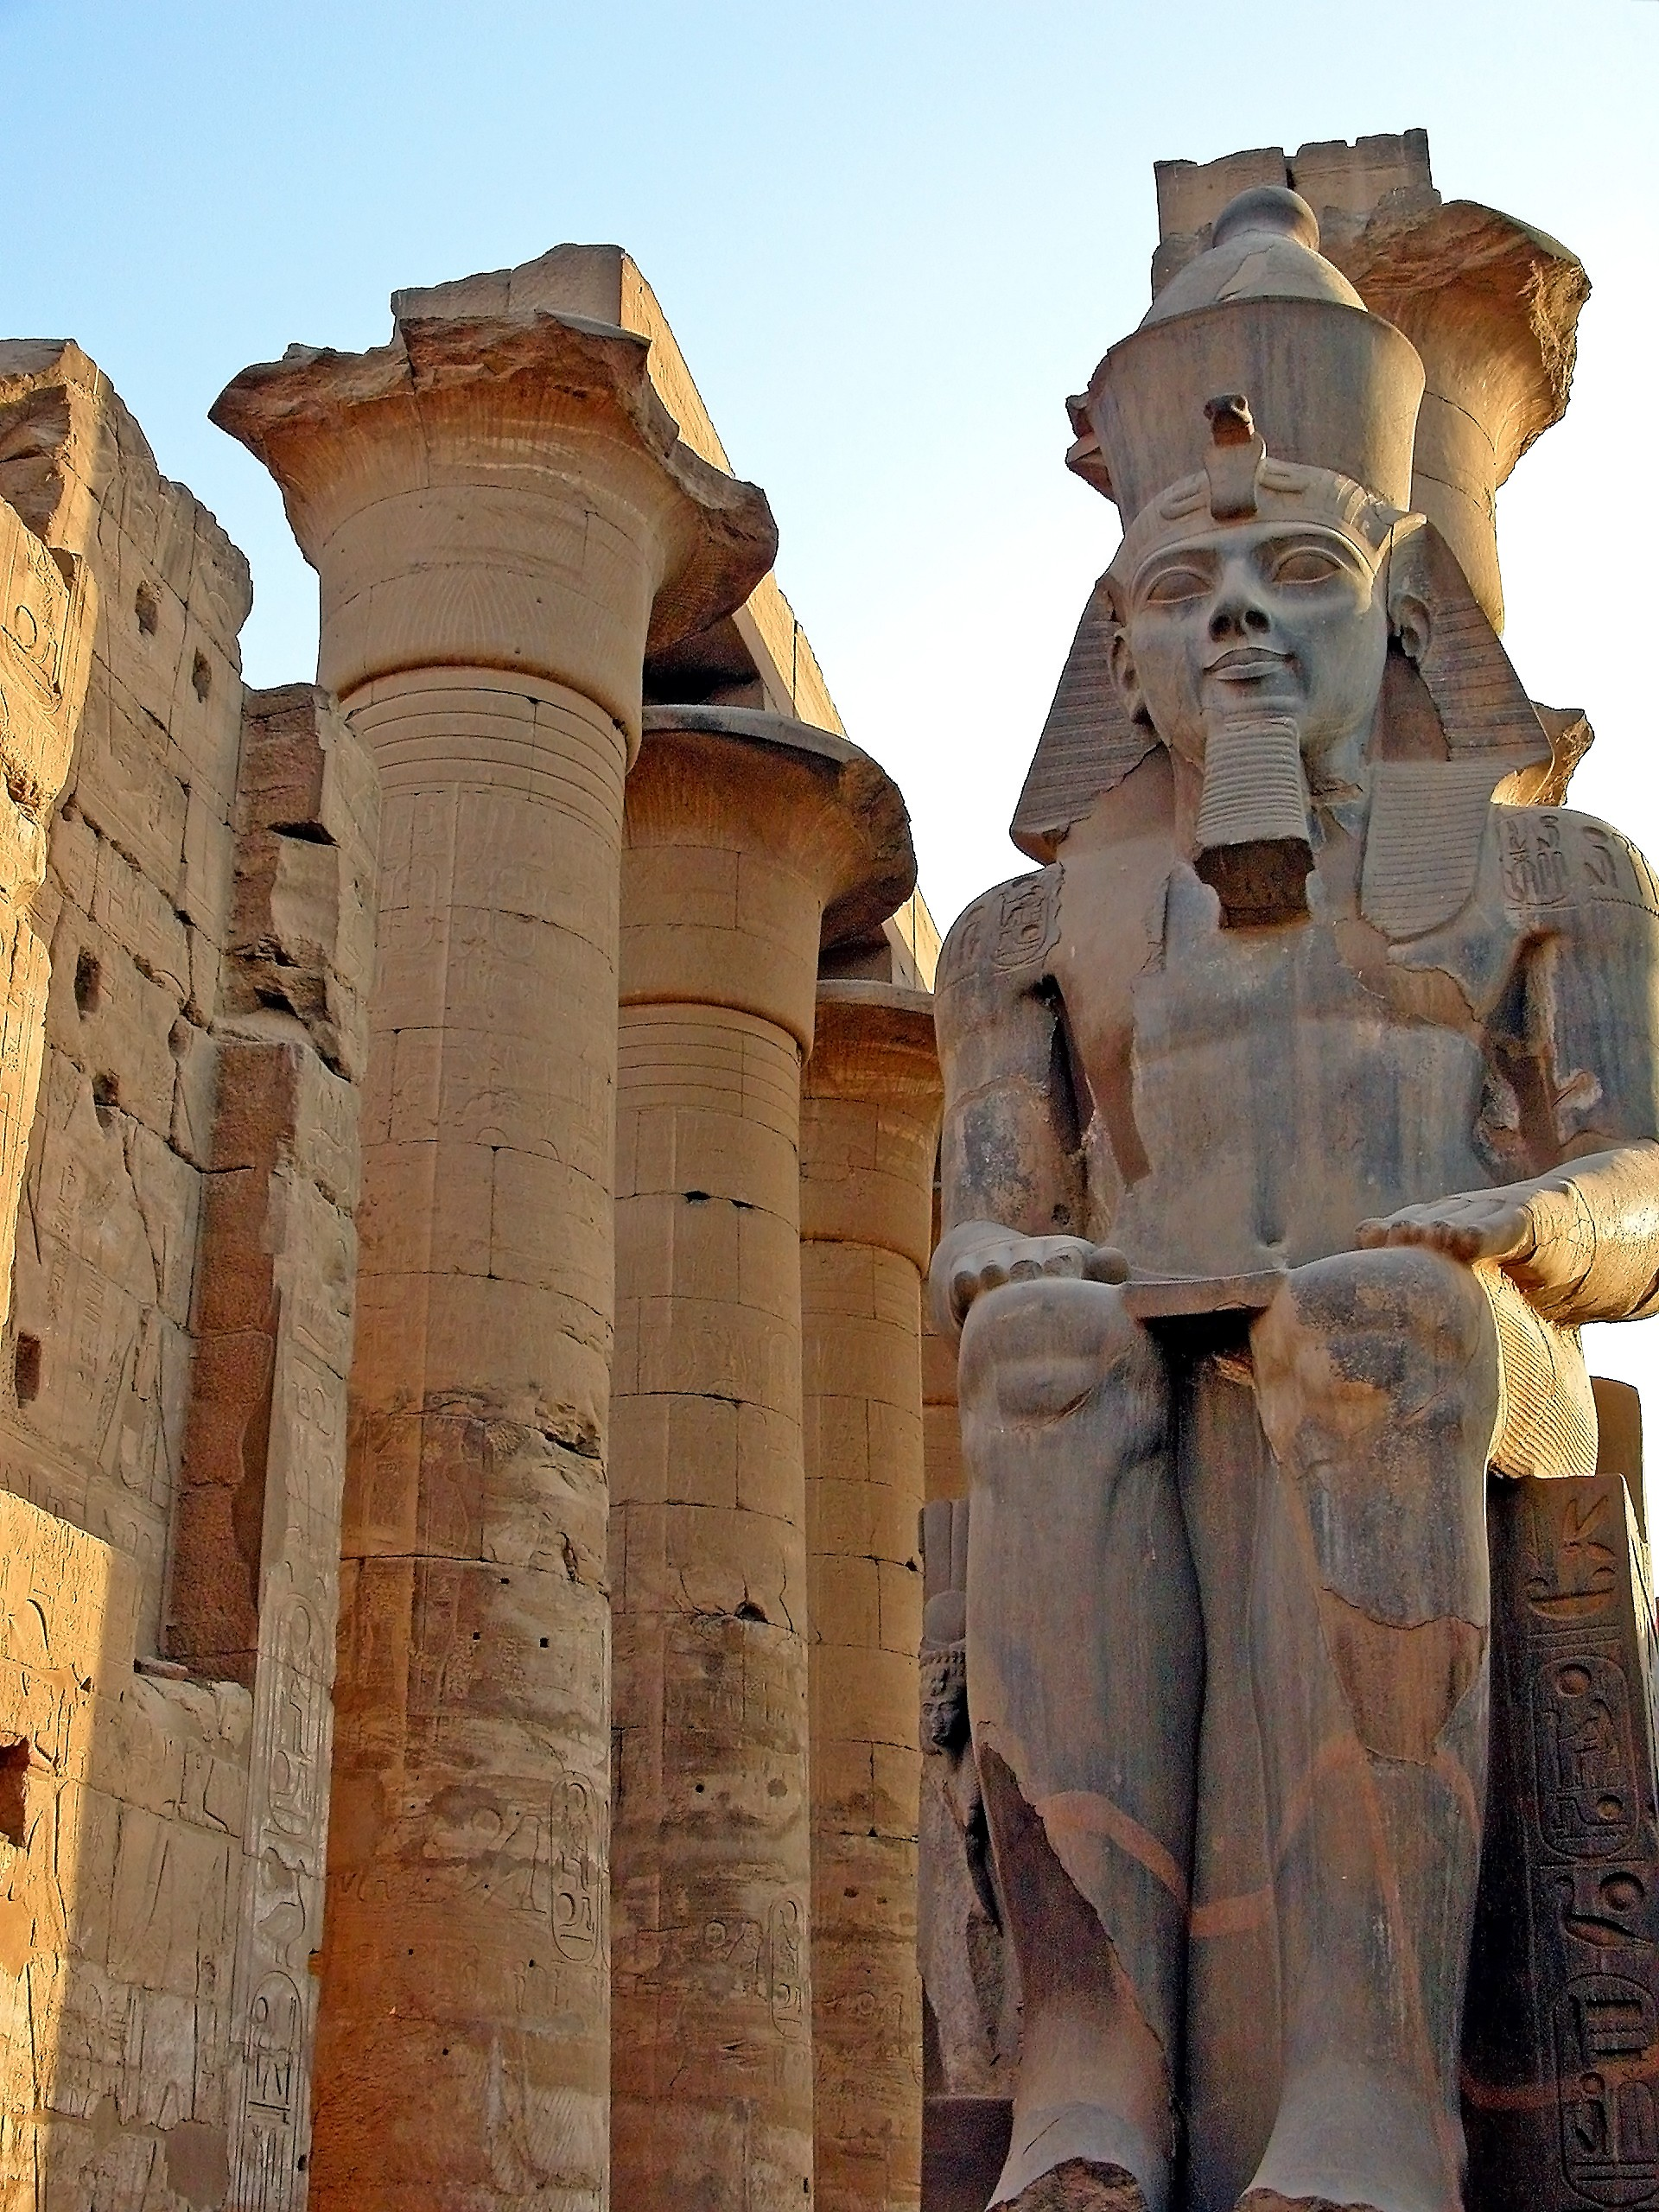 Full day trip to Luxor West & East Bank from Luxor International Airport